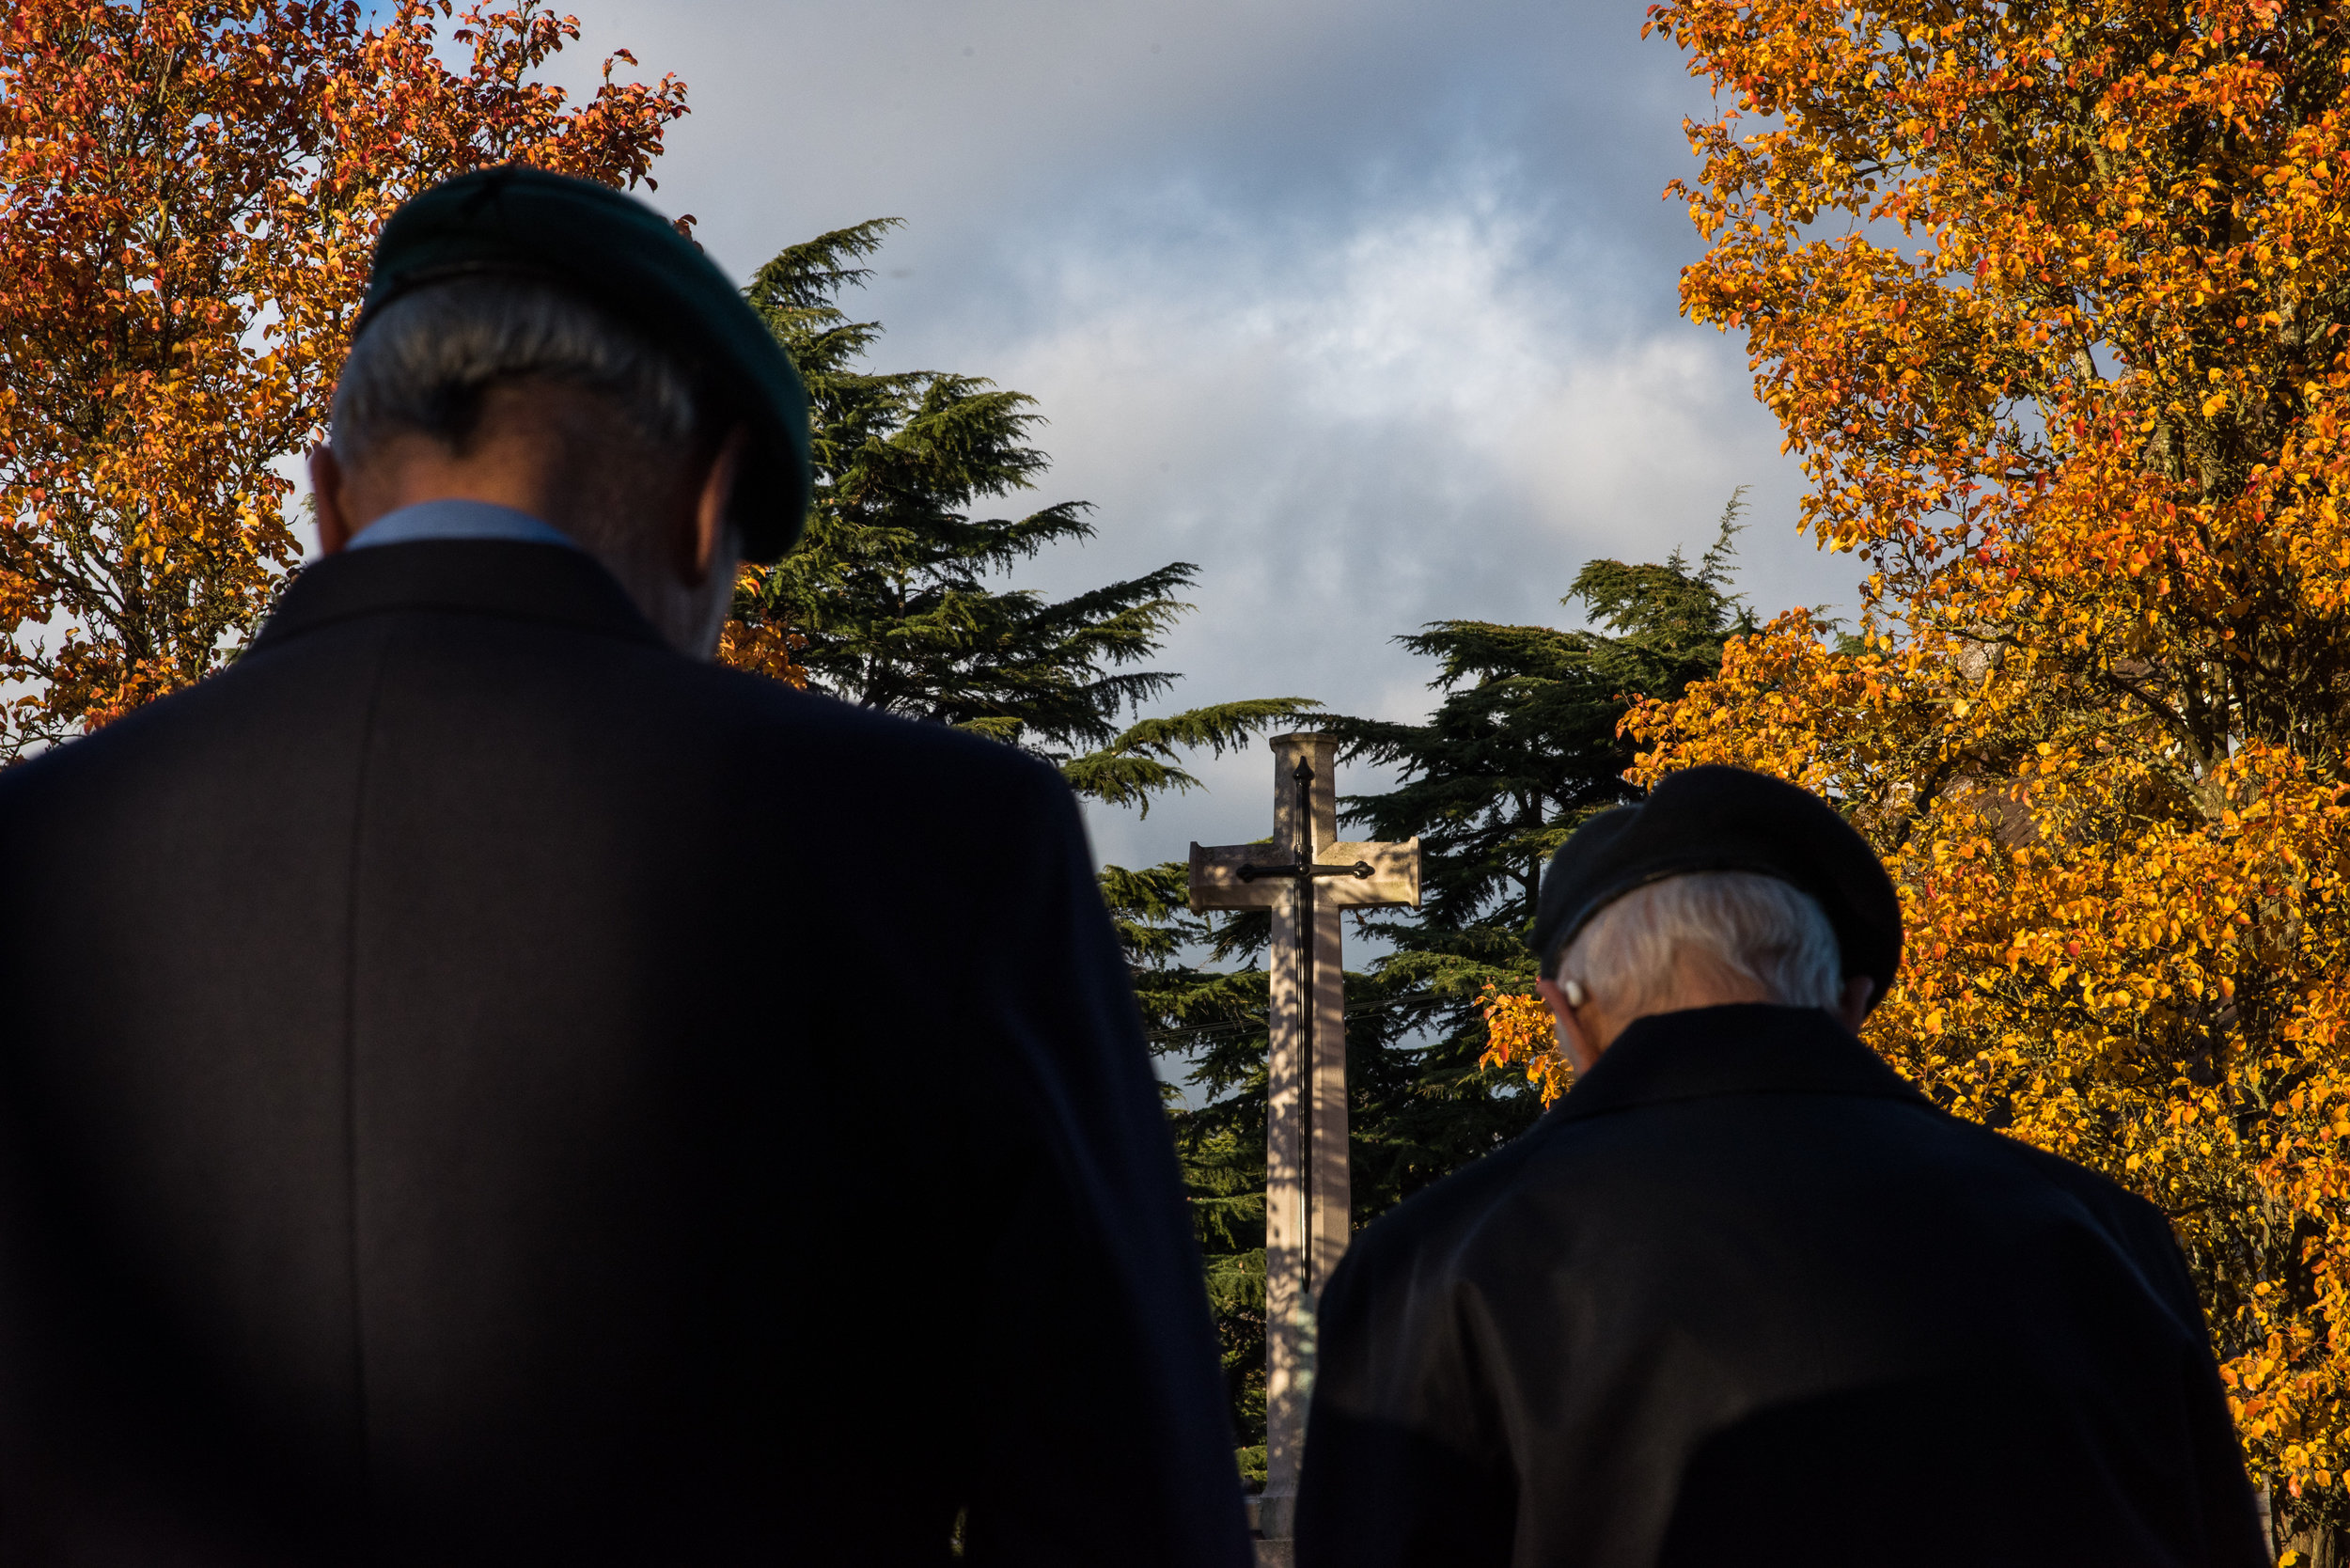 After hundreds at the 11am public service in the memorial garden, with no more than 6 veterans and 14 people in total, remembrance in the cemetery by the war graves felt very solemn and special